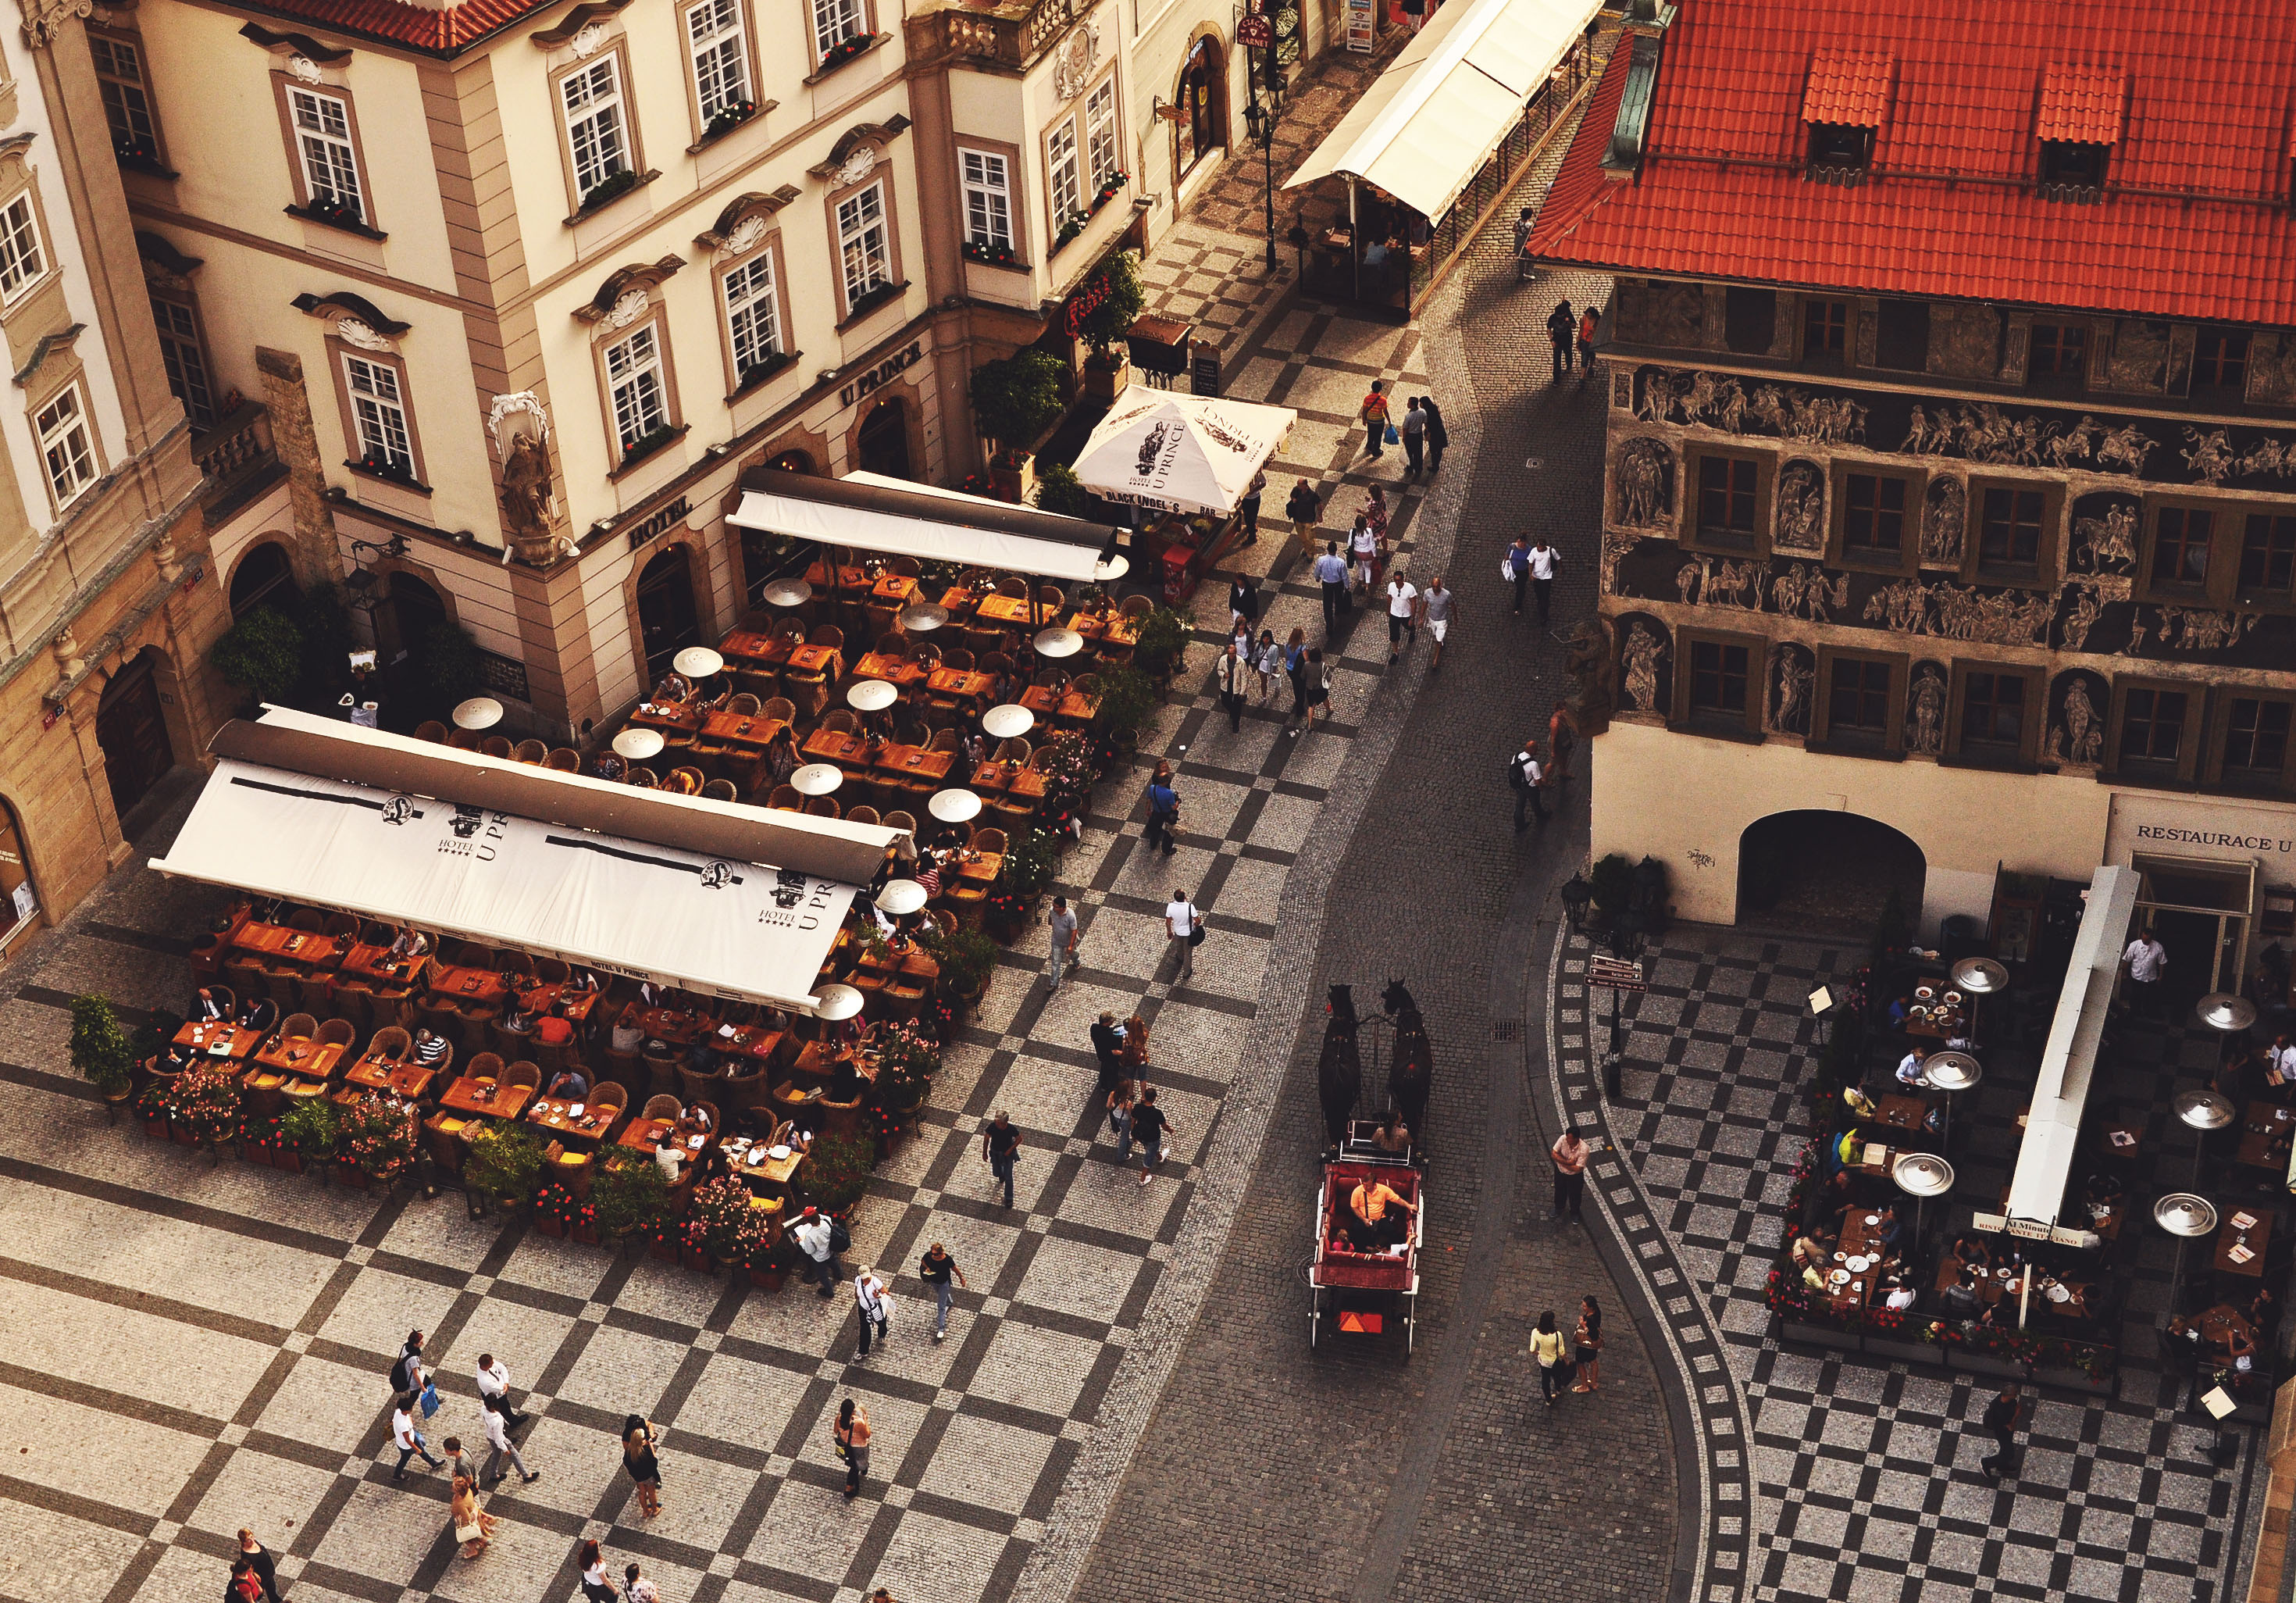 praga-from-above-a